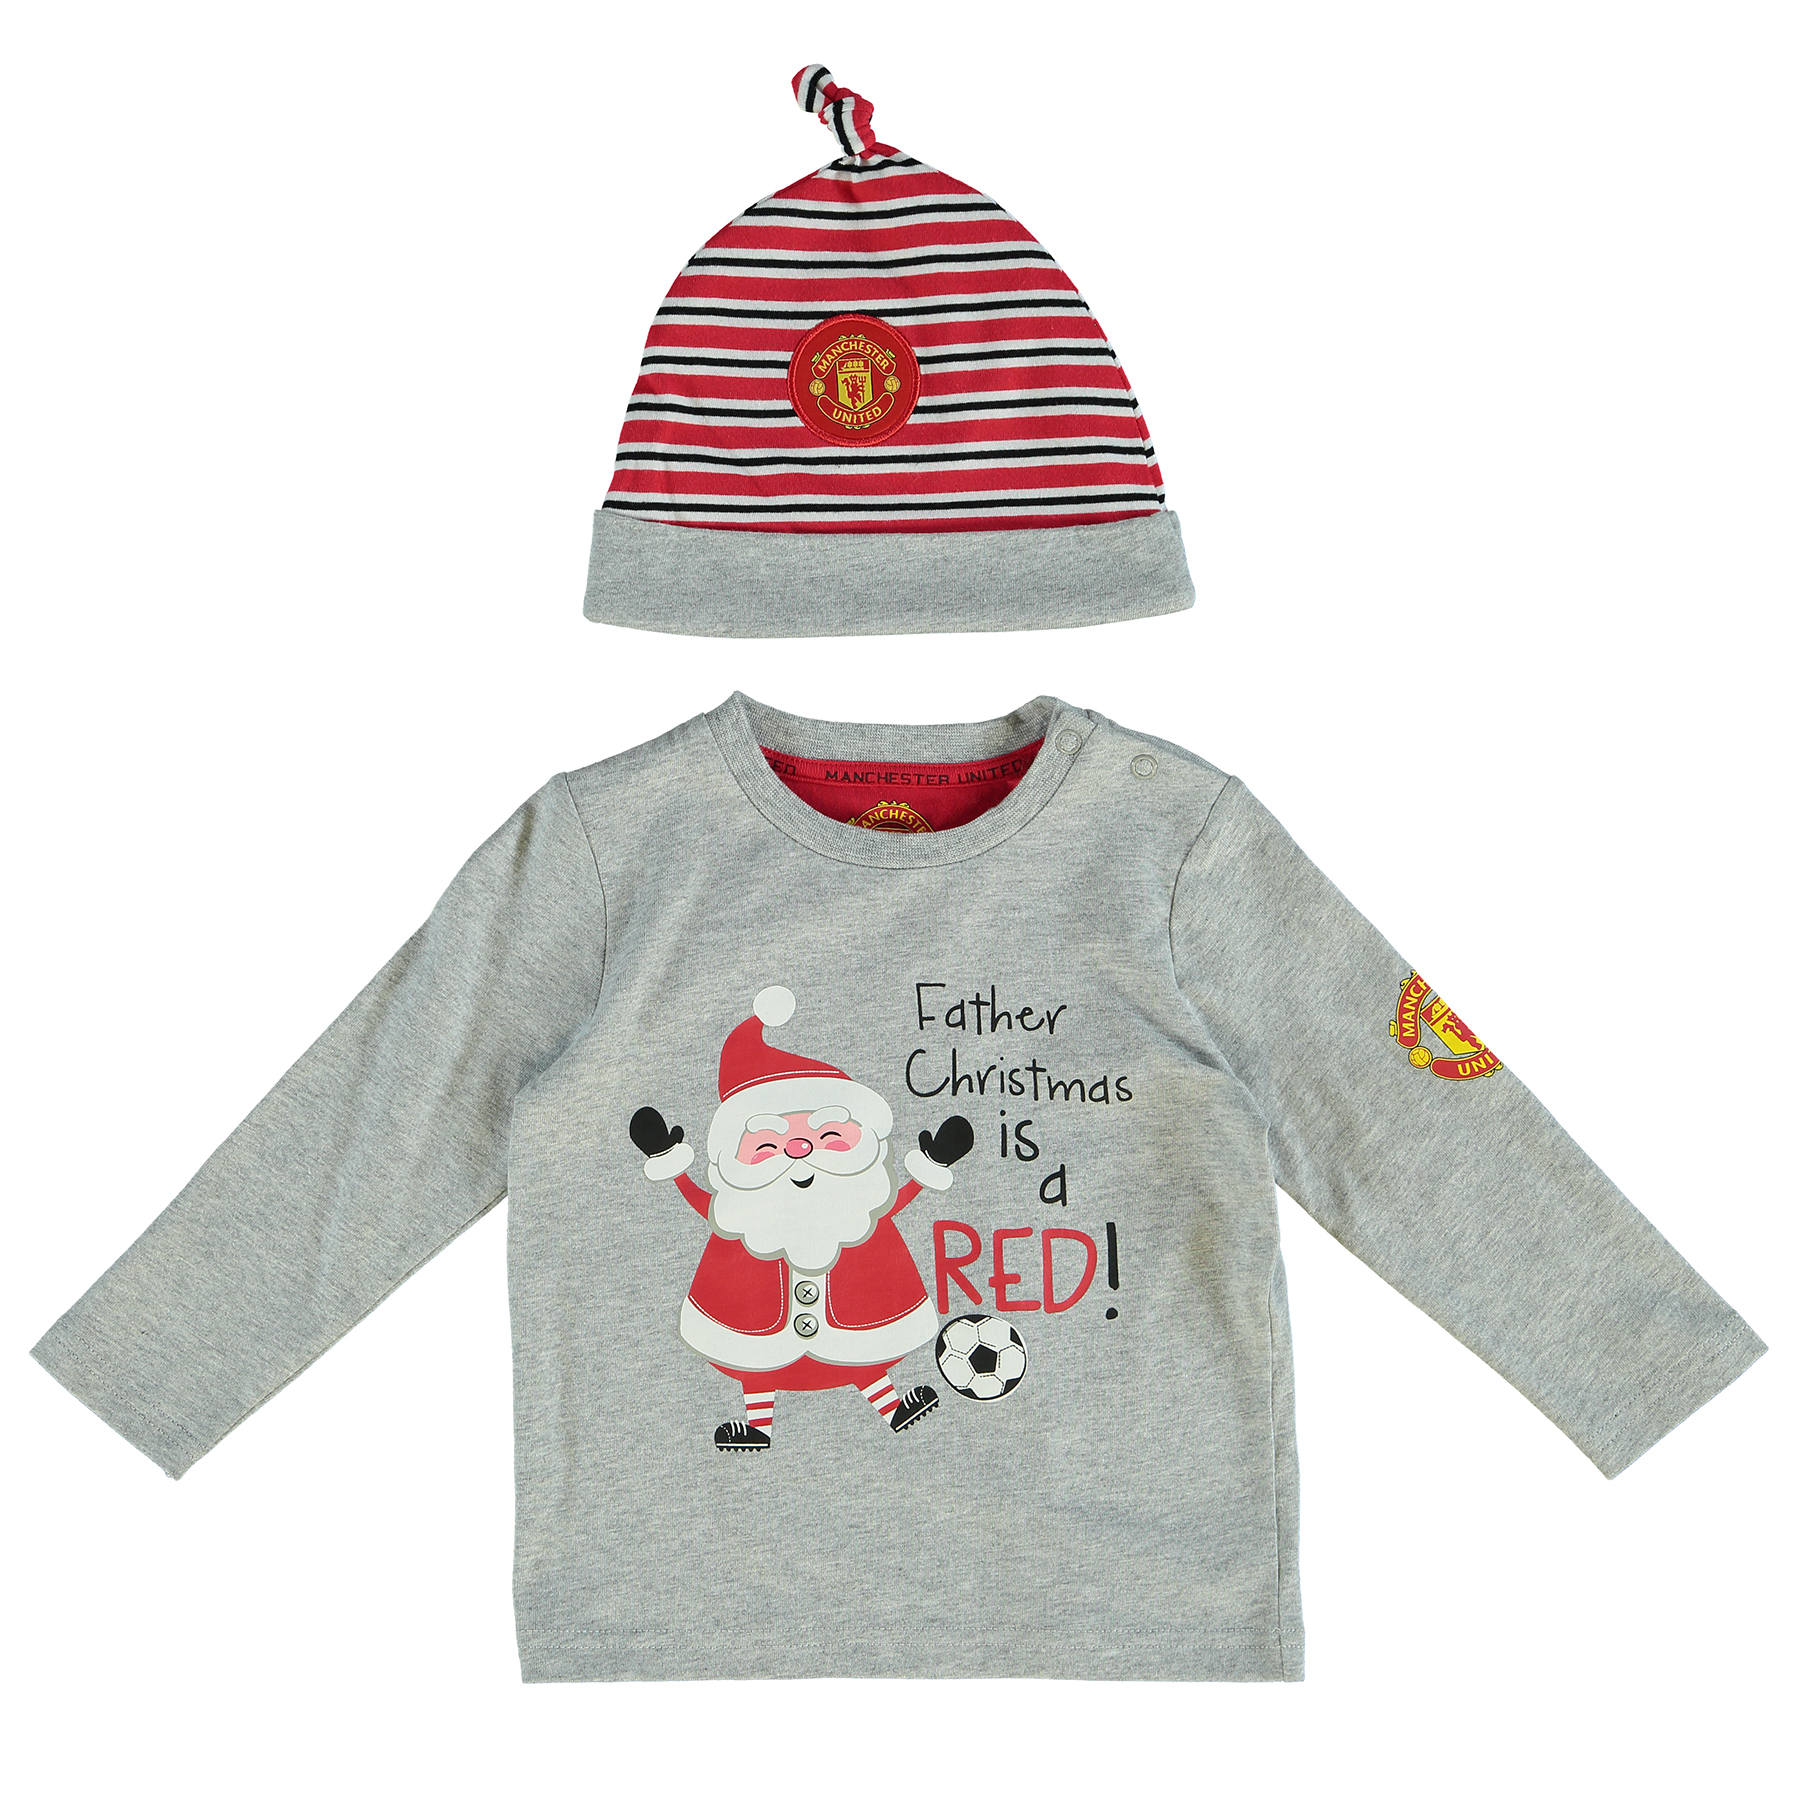 Manchester United Father Christmas Is Red T-Shirt and Hat Set - Grey M